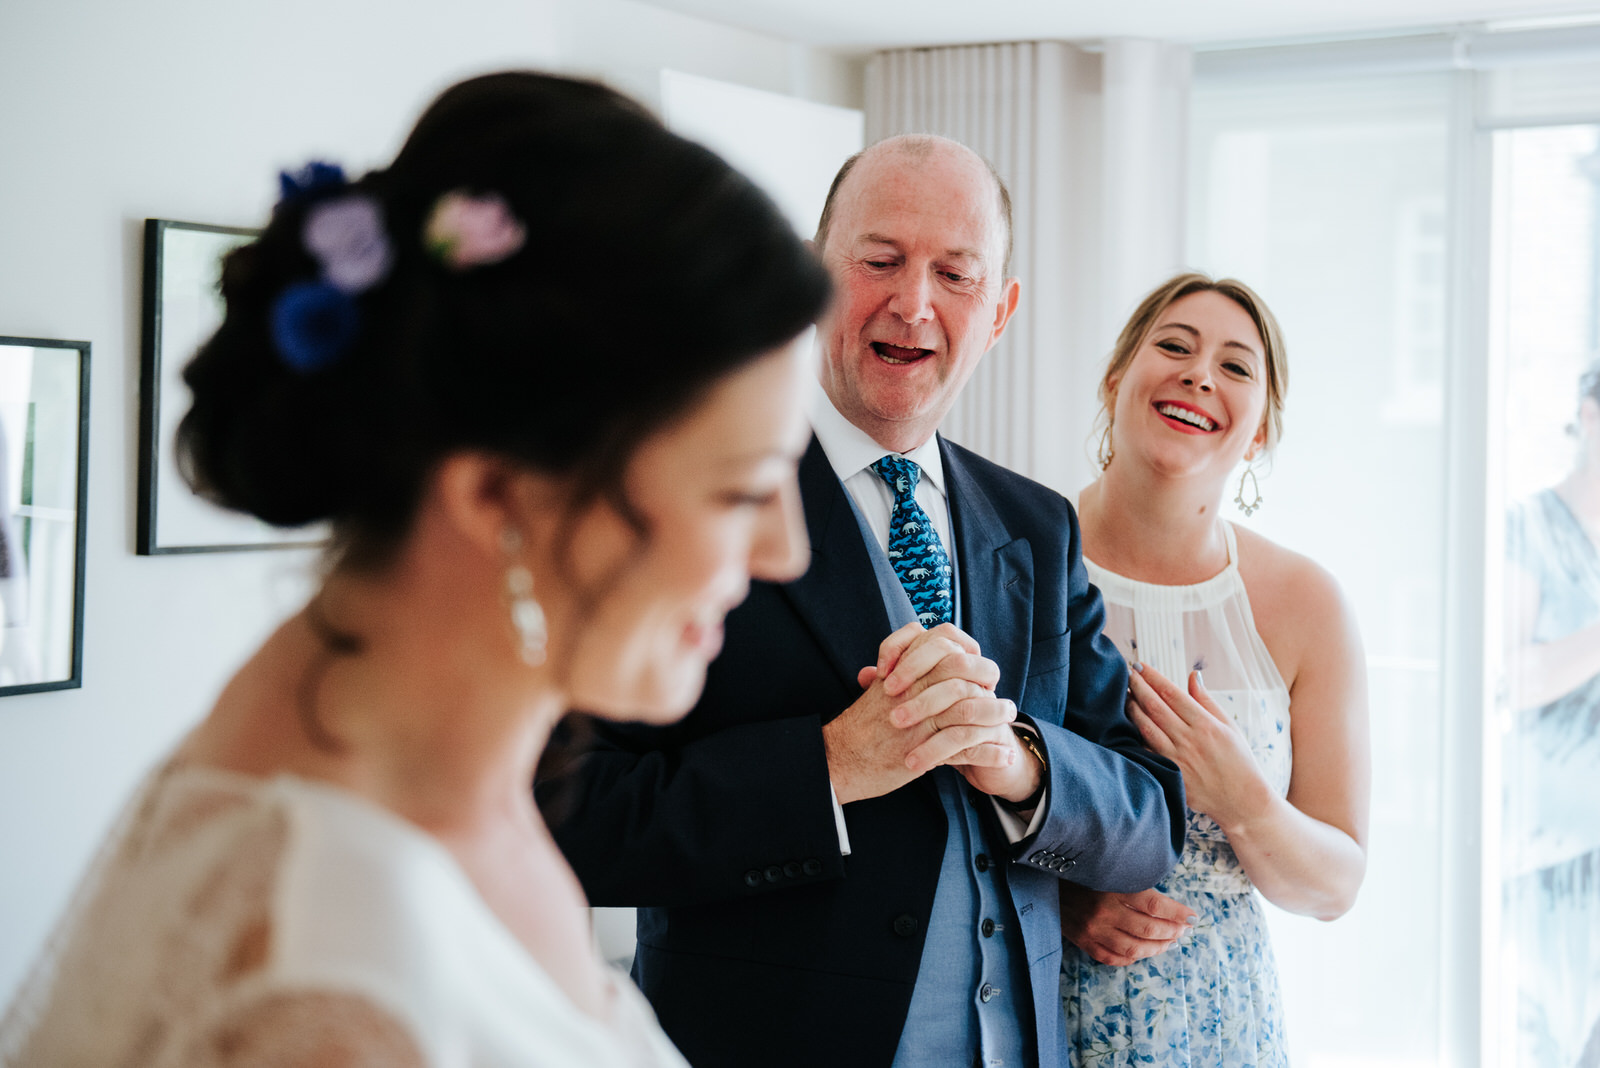 Father of the bride reacts and smiles after seeing her in her dr